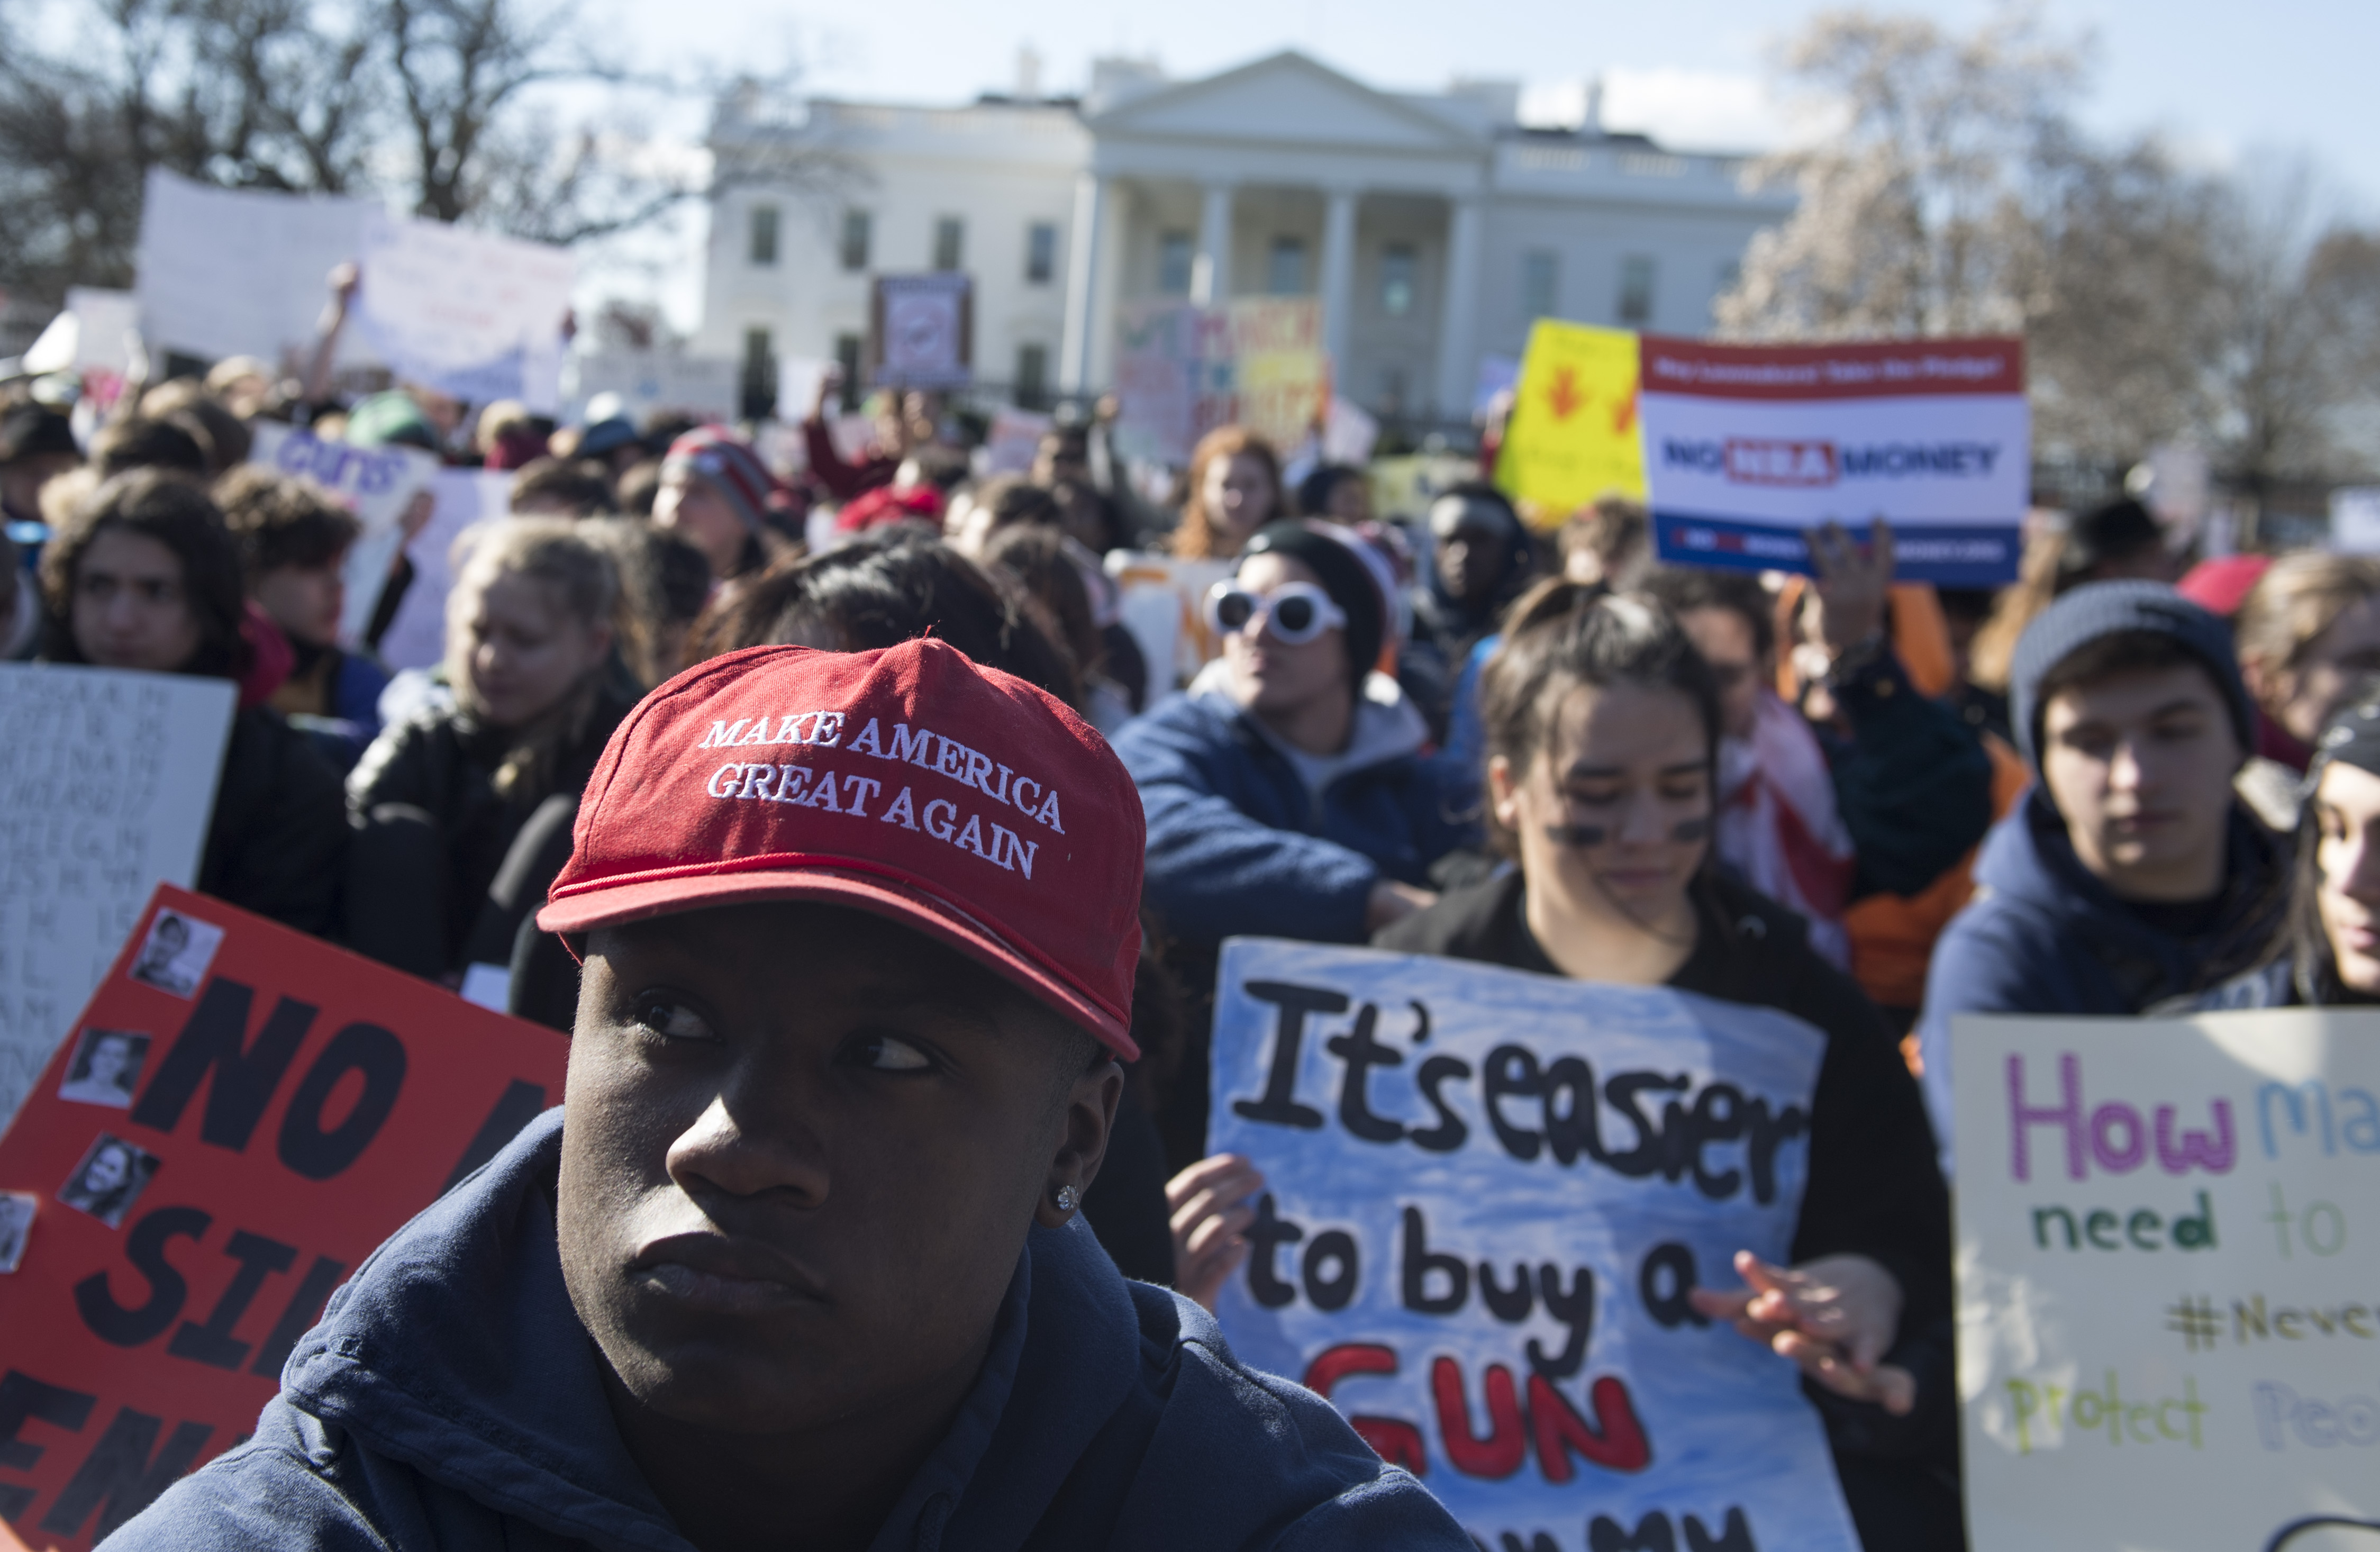 Thousands of local students sit for 17 minutes in honor of the 17 students killed last month in a high school shooting in Florida, during a nationwide student walkout for gun control in front the White House in Washington, DC, March 14, 2018. Students across the US walked out of classes on March 14, in a nationwide call for action against gun violence following the shooting deaths last month at a Florida high school. The nationwide protest is being held one month to the day after Nikolas Cruz, a troubled 19-year-old former student at Stoneman Douglas, unleashed a hail of gunfire on his former classmates. (SAUL LOEB/AFP/Getty Images)